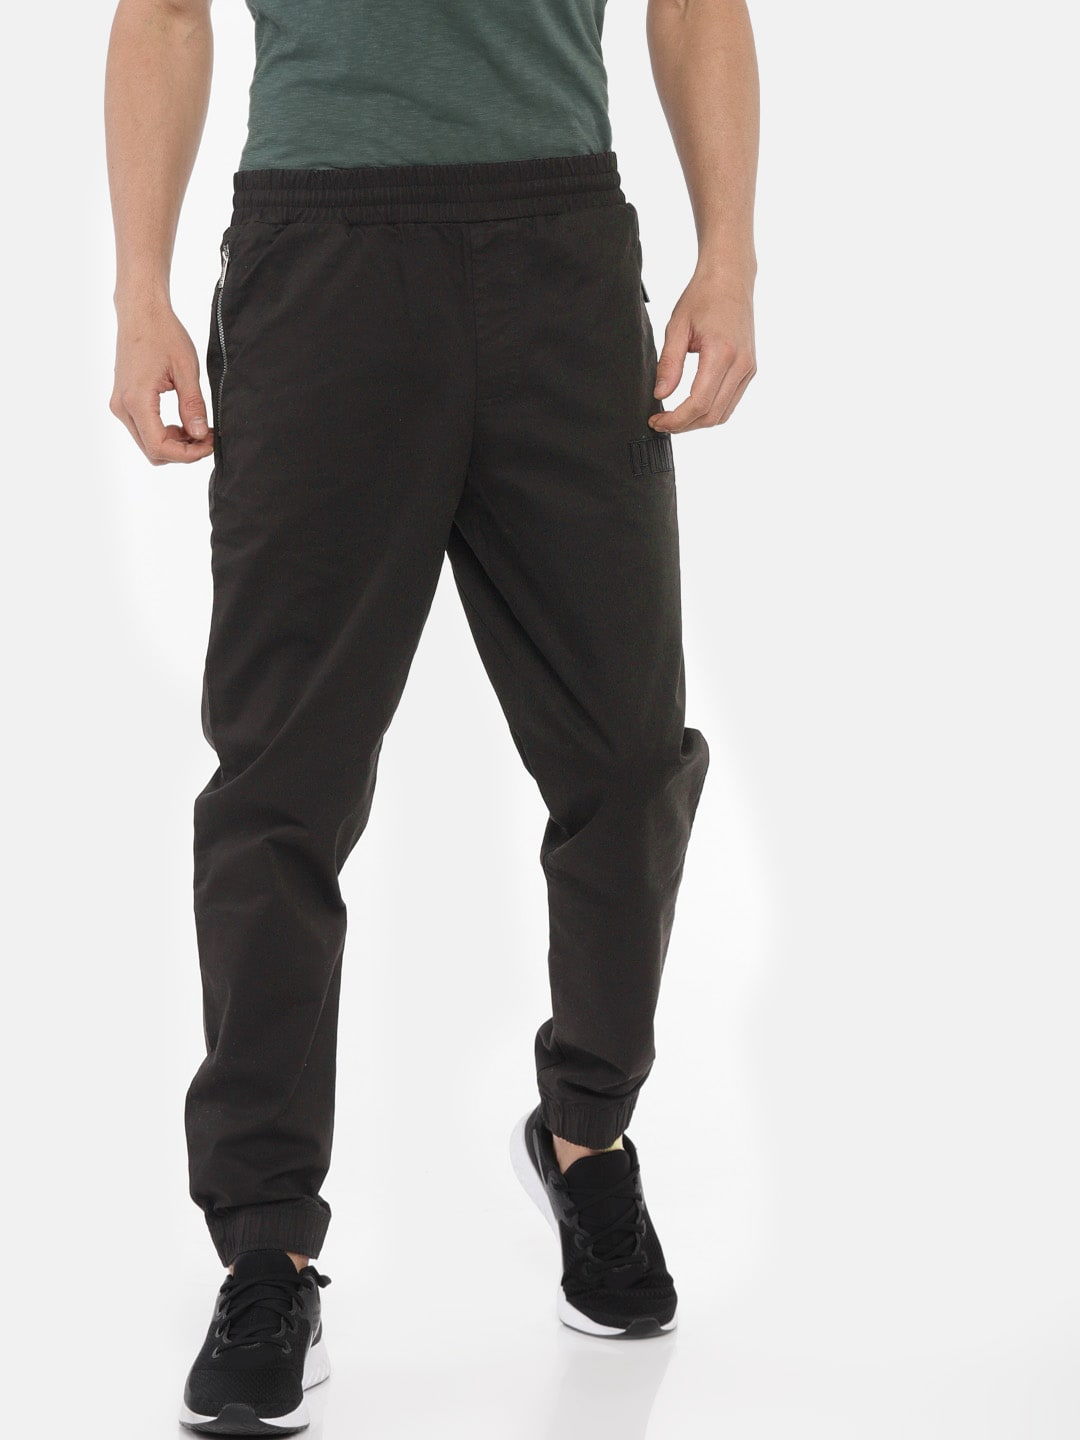 c7eaeb4e629d Sports Apparel Puma Tracksuits - Buy Sports Apparel Puma Tracksuits online  in India